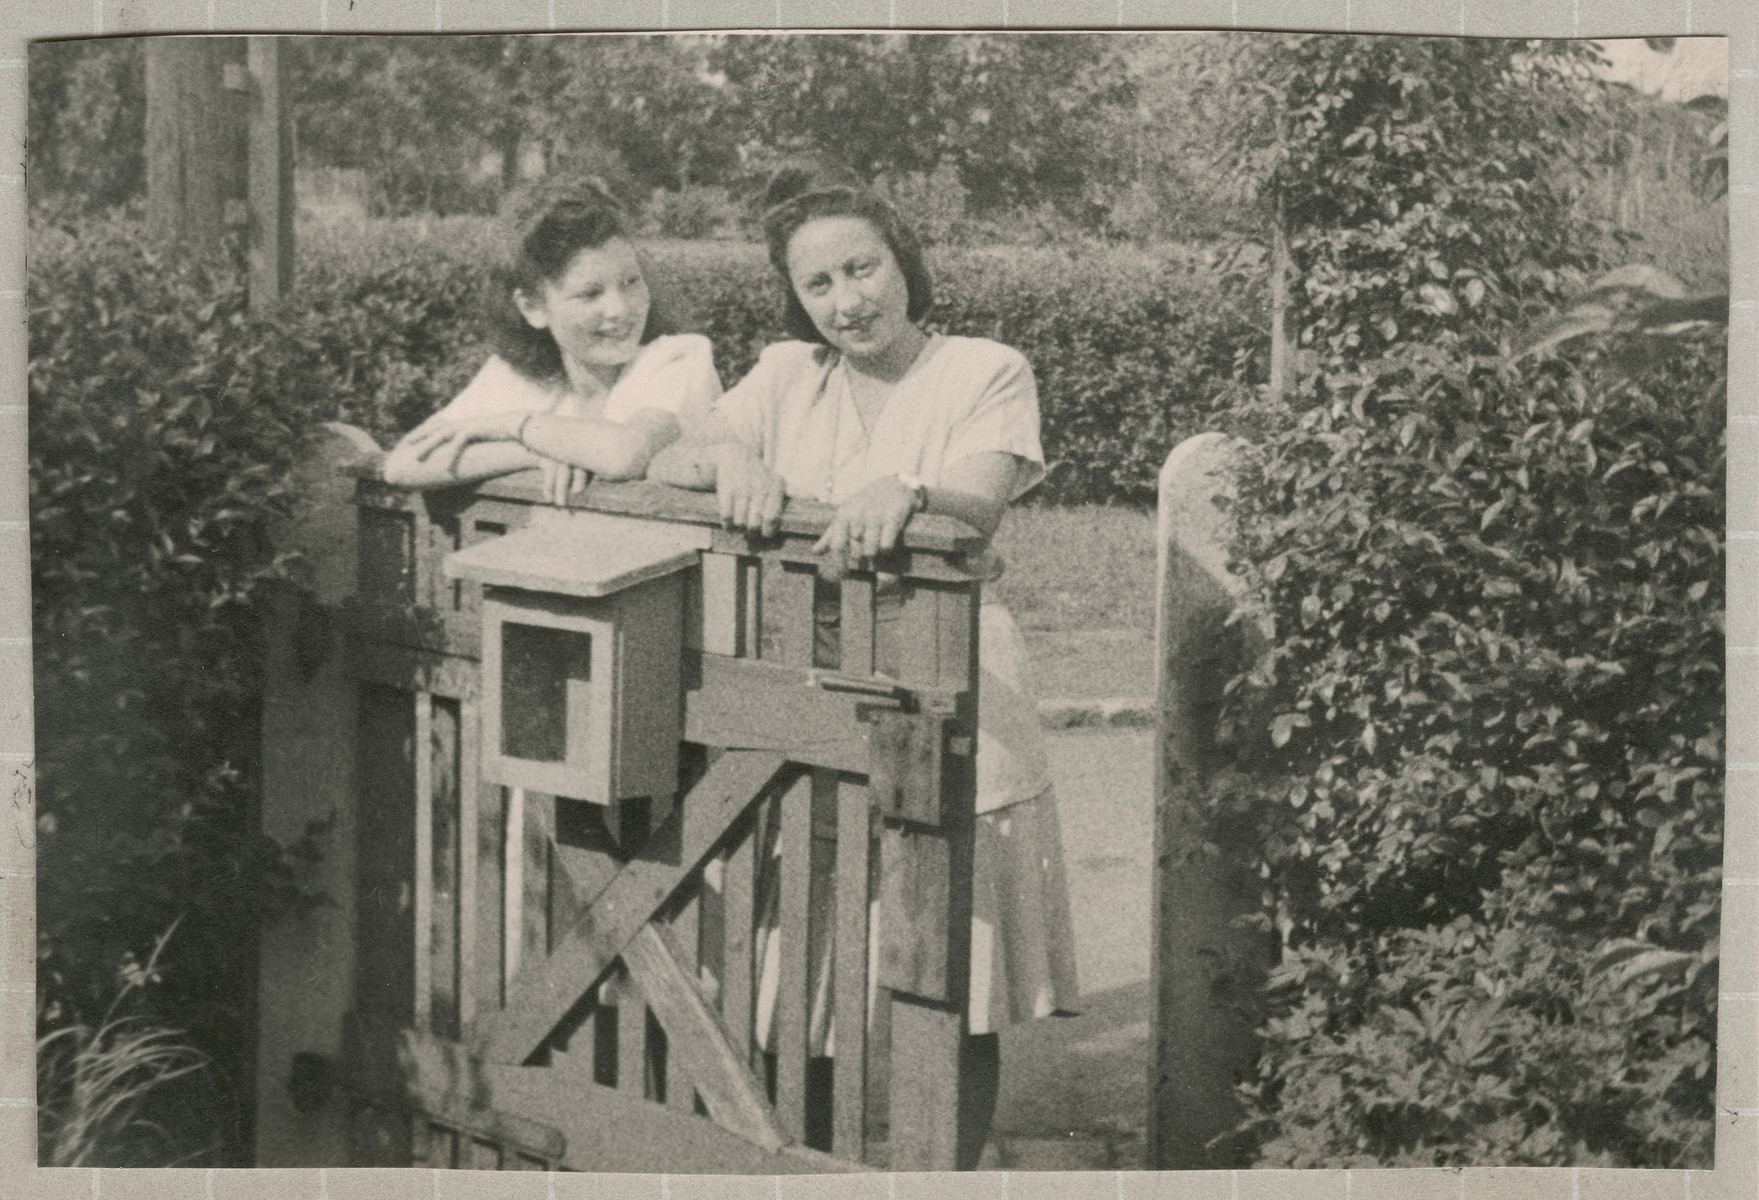 Hanna Bratman and Hanka Bratman Fisch stand by a gate in the Lampertheim displaced persons camp.